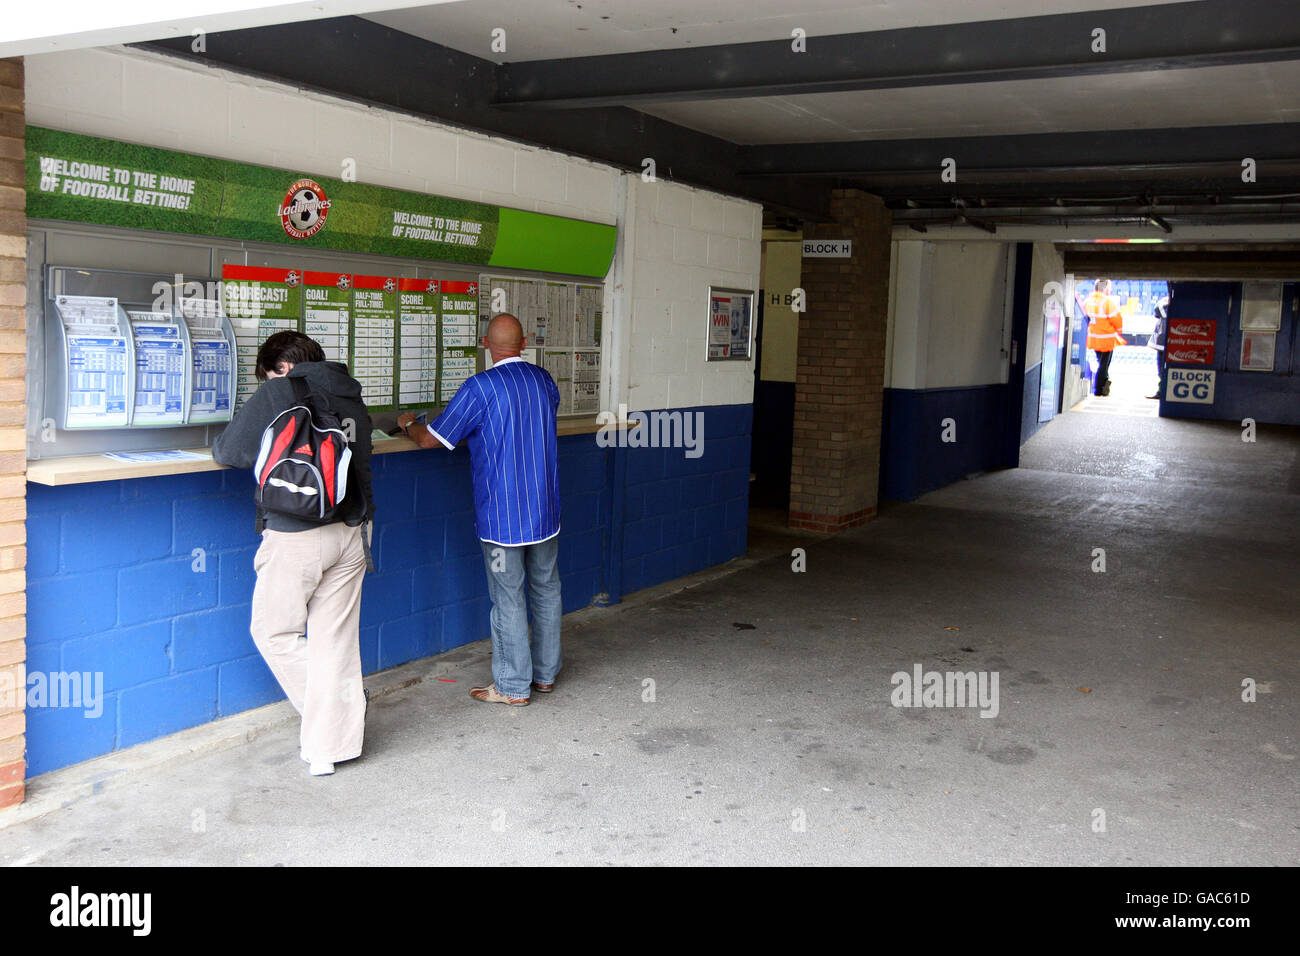 Soccer - Coca-Cola Football League Championship - Ipswich Town v Preston North End - Portman Road Stock Photo